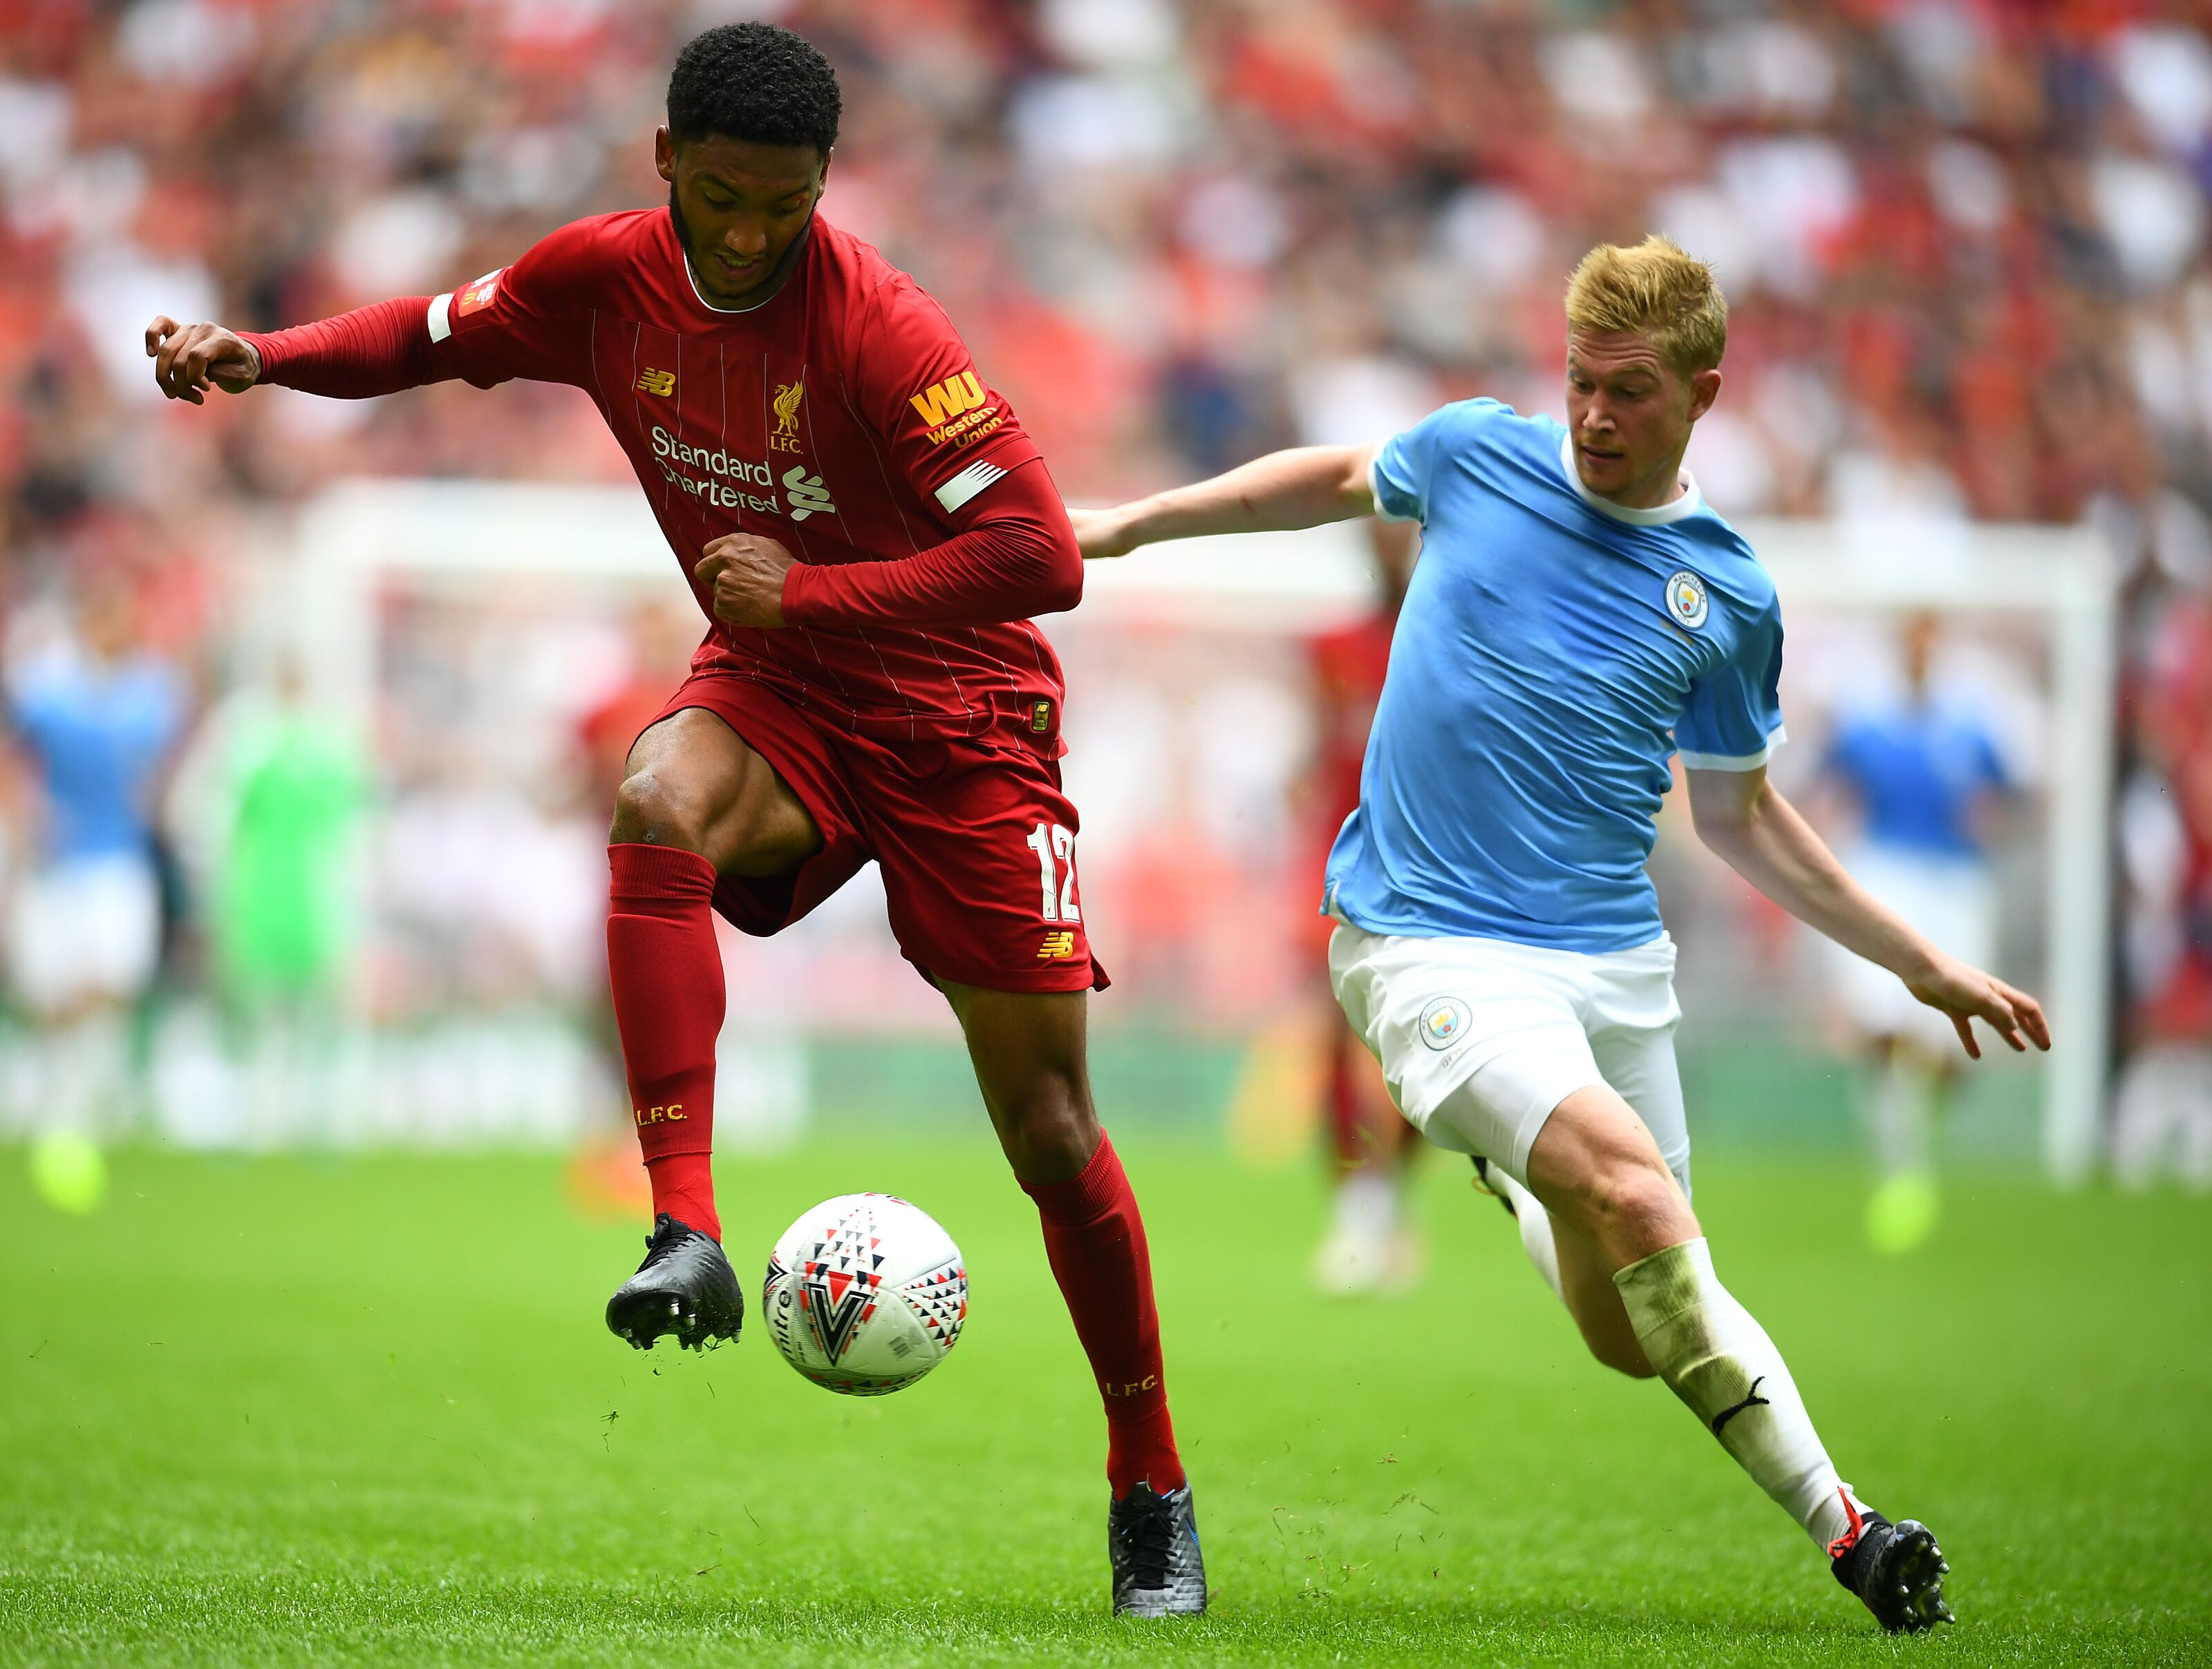 Liverpool vs Man City: We're stuck between a rock and a hard place